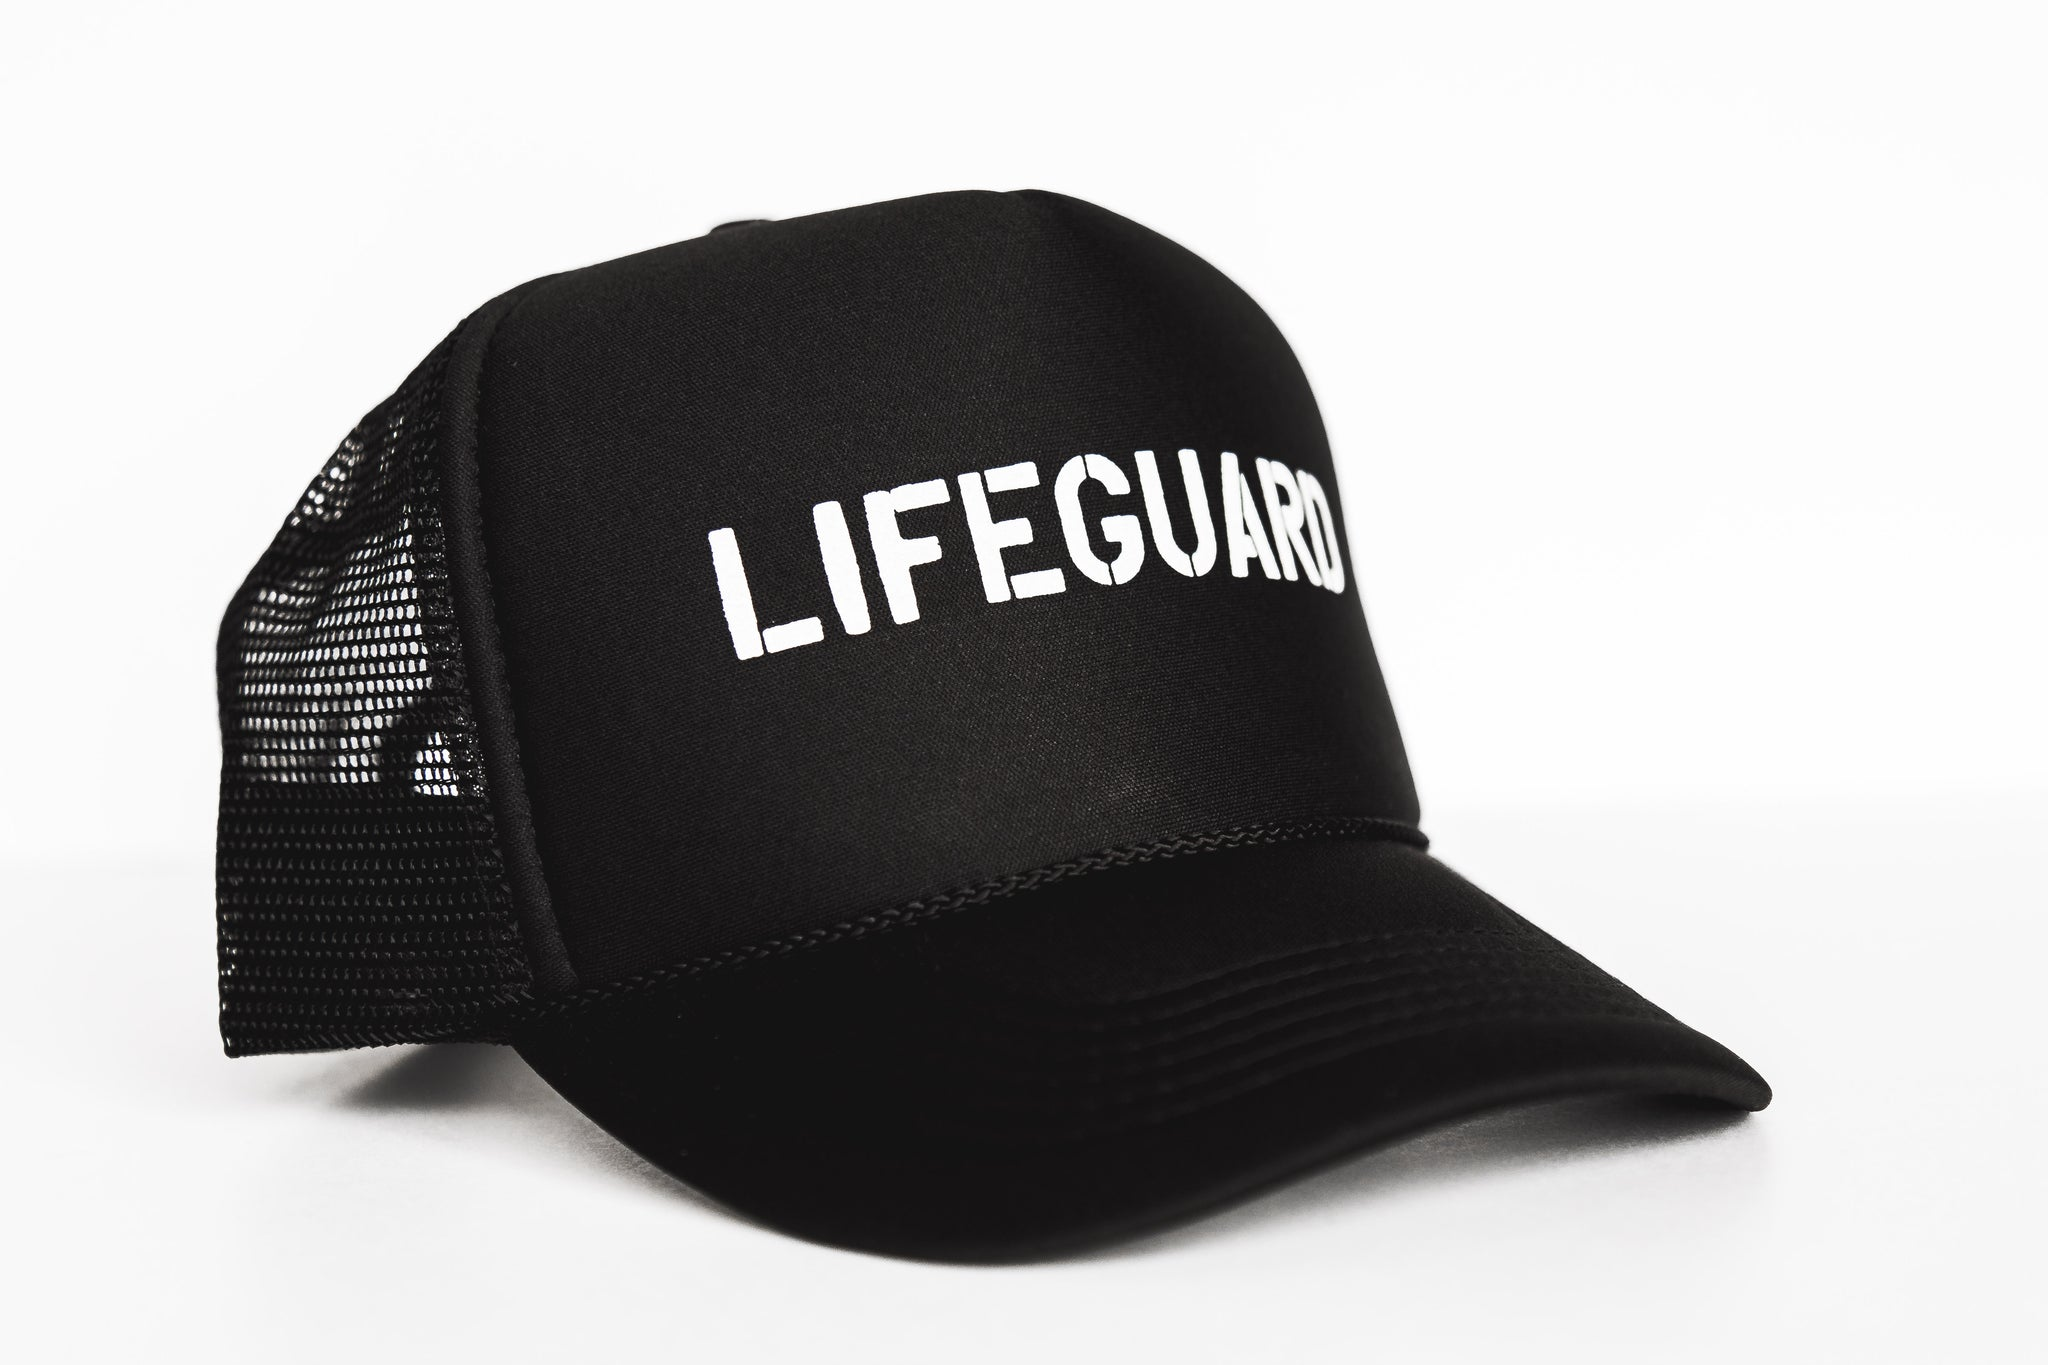 Lifeguard - Snapback Trucker Hat